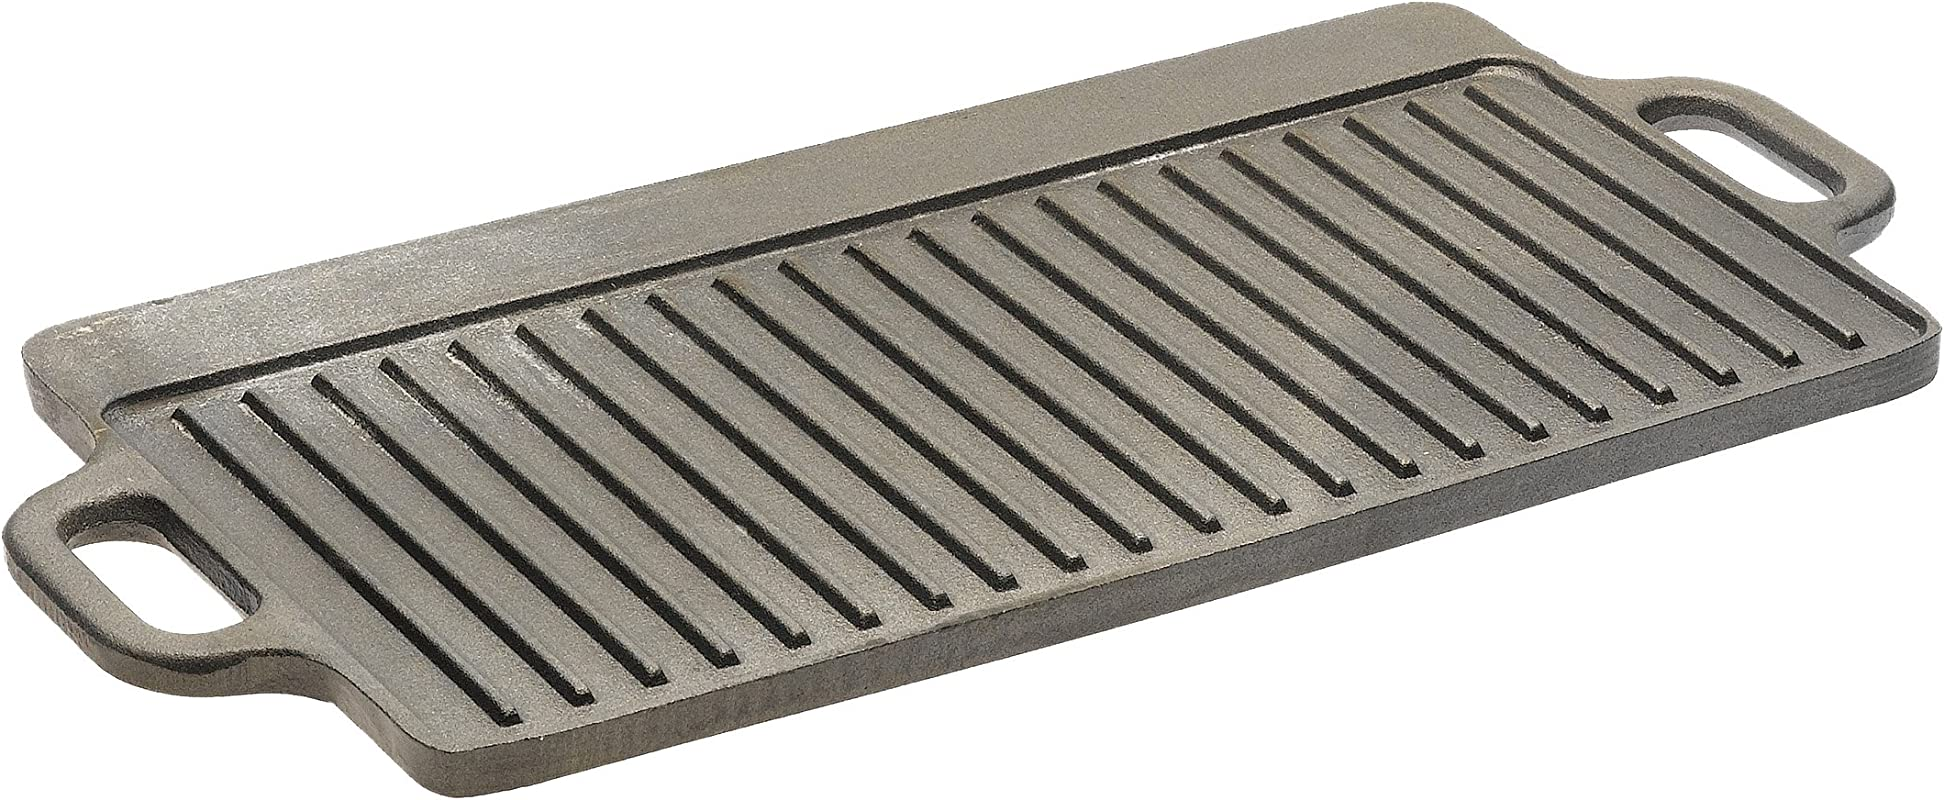 Tomlinson Reversible Griddle With Handles